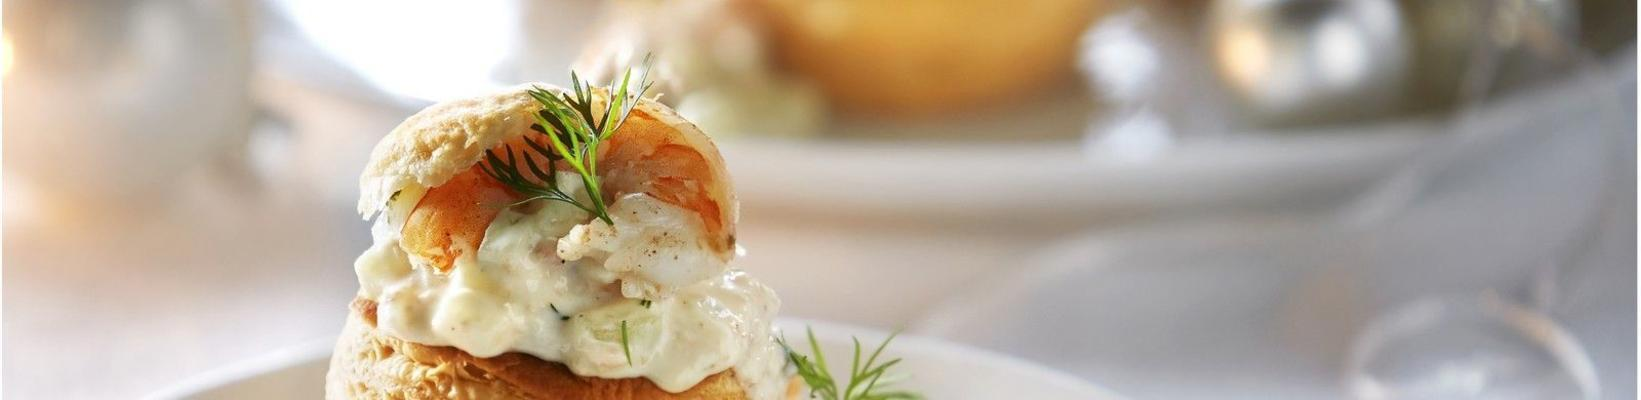 patty with salmon and shrimps